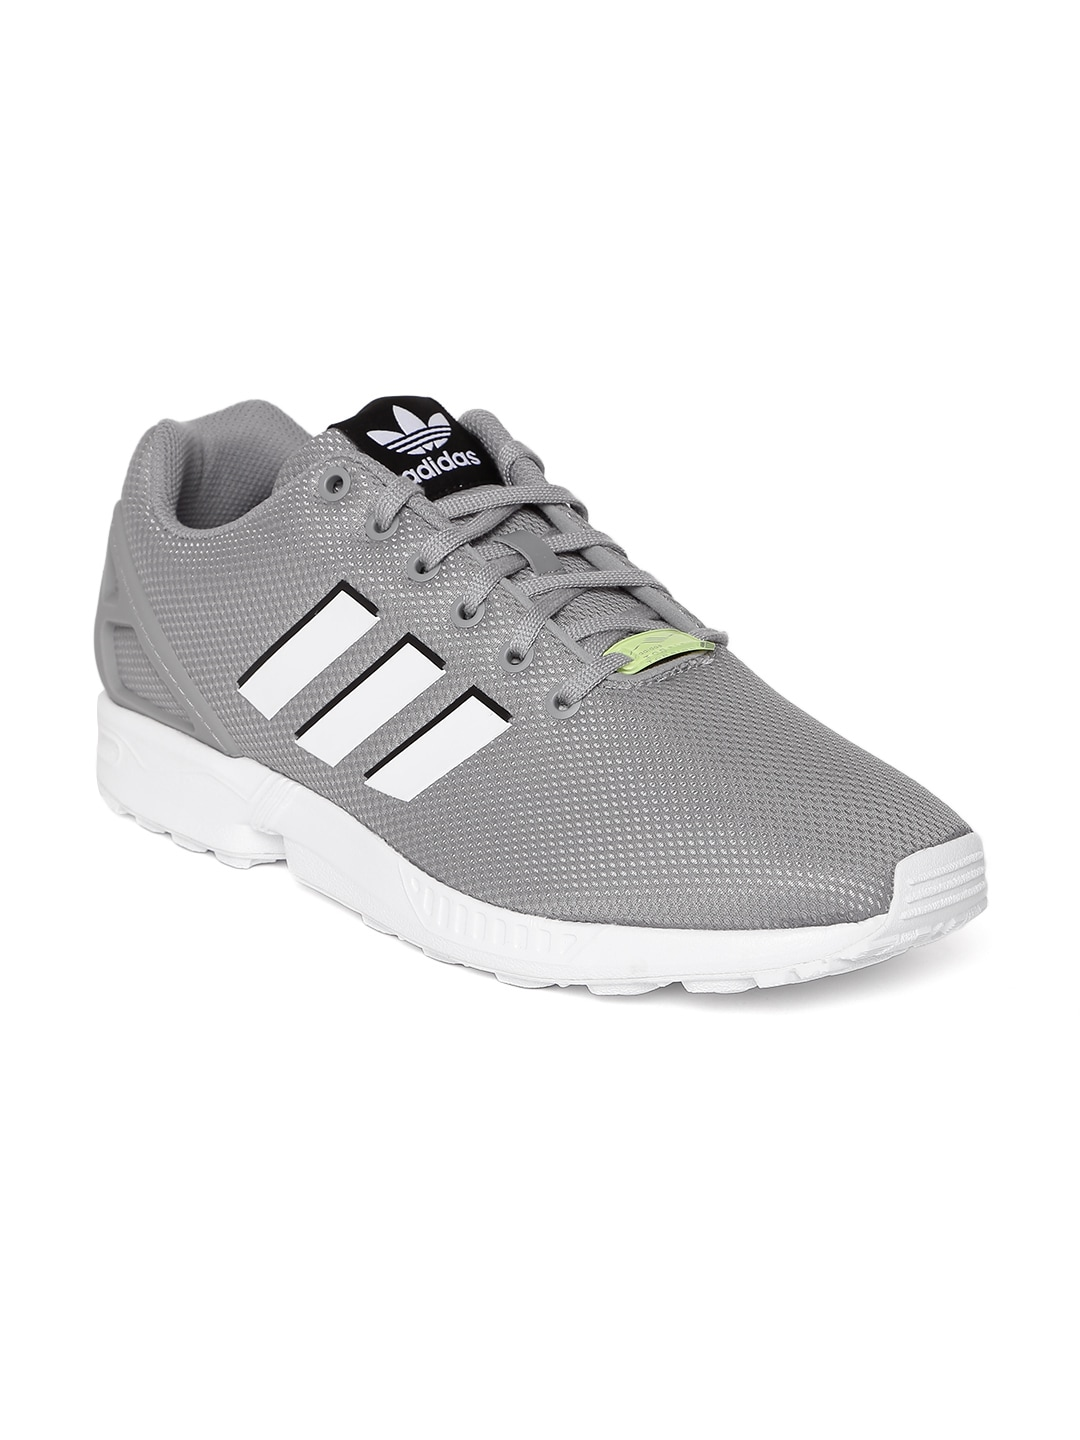 huge selection of 5c06d 38617 adidas - Exclusive adidas Online Store in India at Myntra